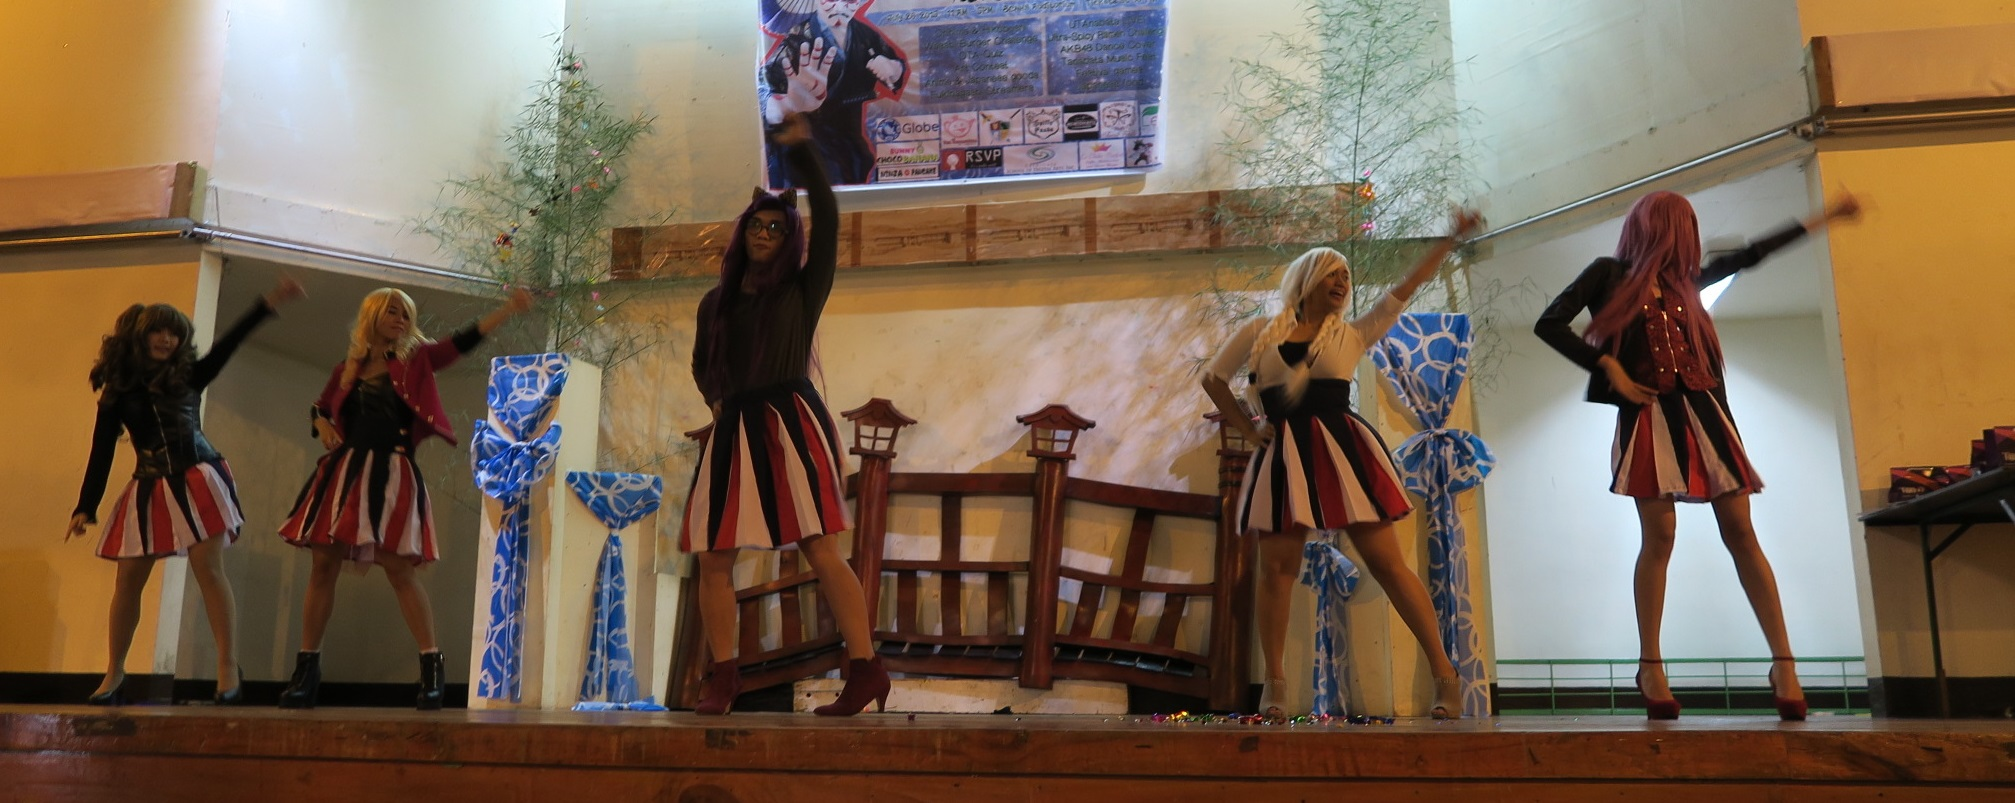 COSPLAY TANABATA FESTIVAL 4 in Baguio city 2015_a0109542_120272.jpg